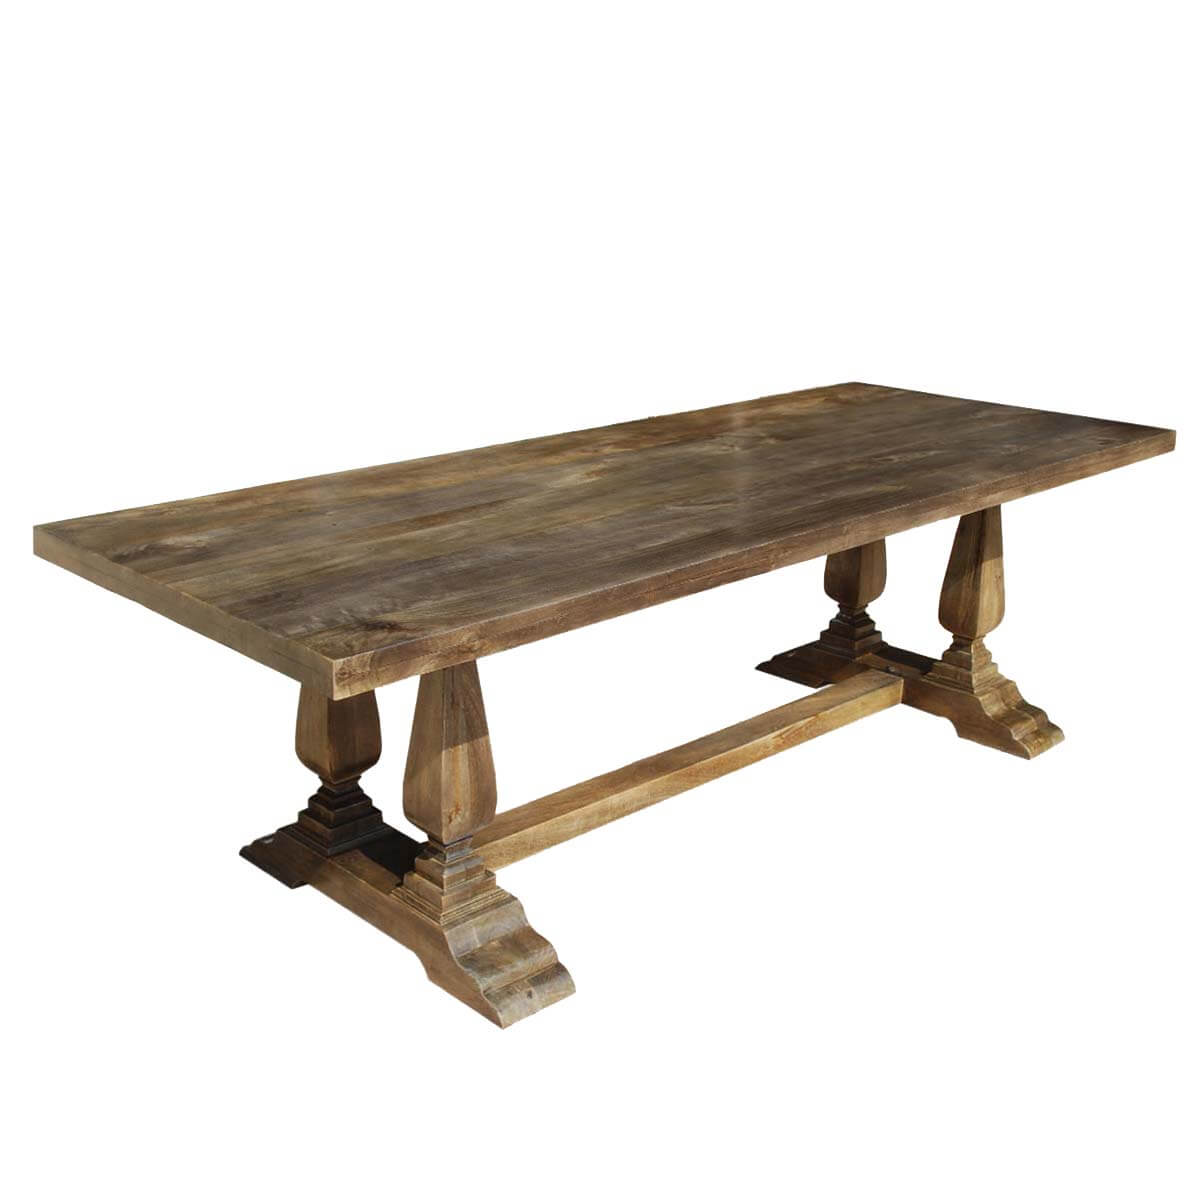 Pelham rustic 98 solid wood trestle pedestal dining table for Pedestal dining table